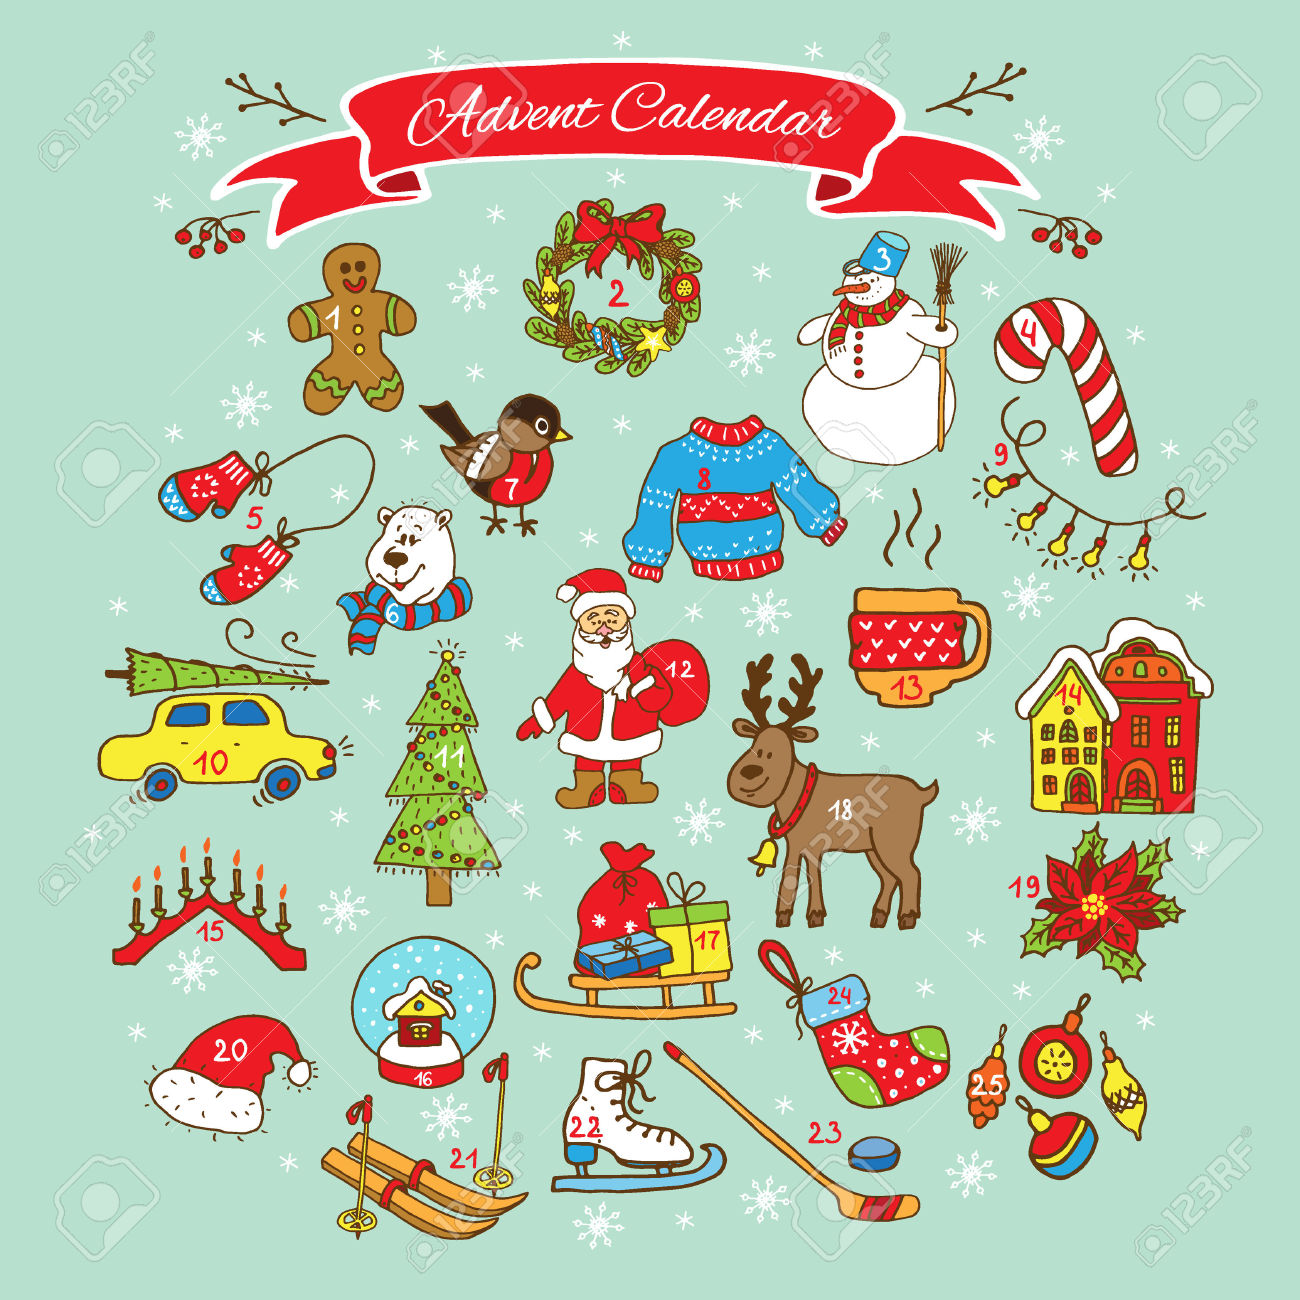 Advent calendar ornaments clipart picture library library 7,462 Advent Season Stock Vector Illustration And Royalty Free ... picture library library